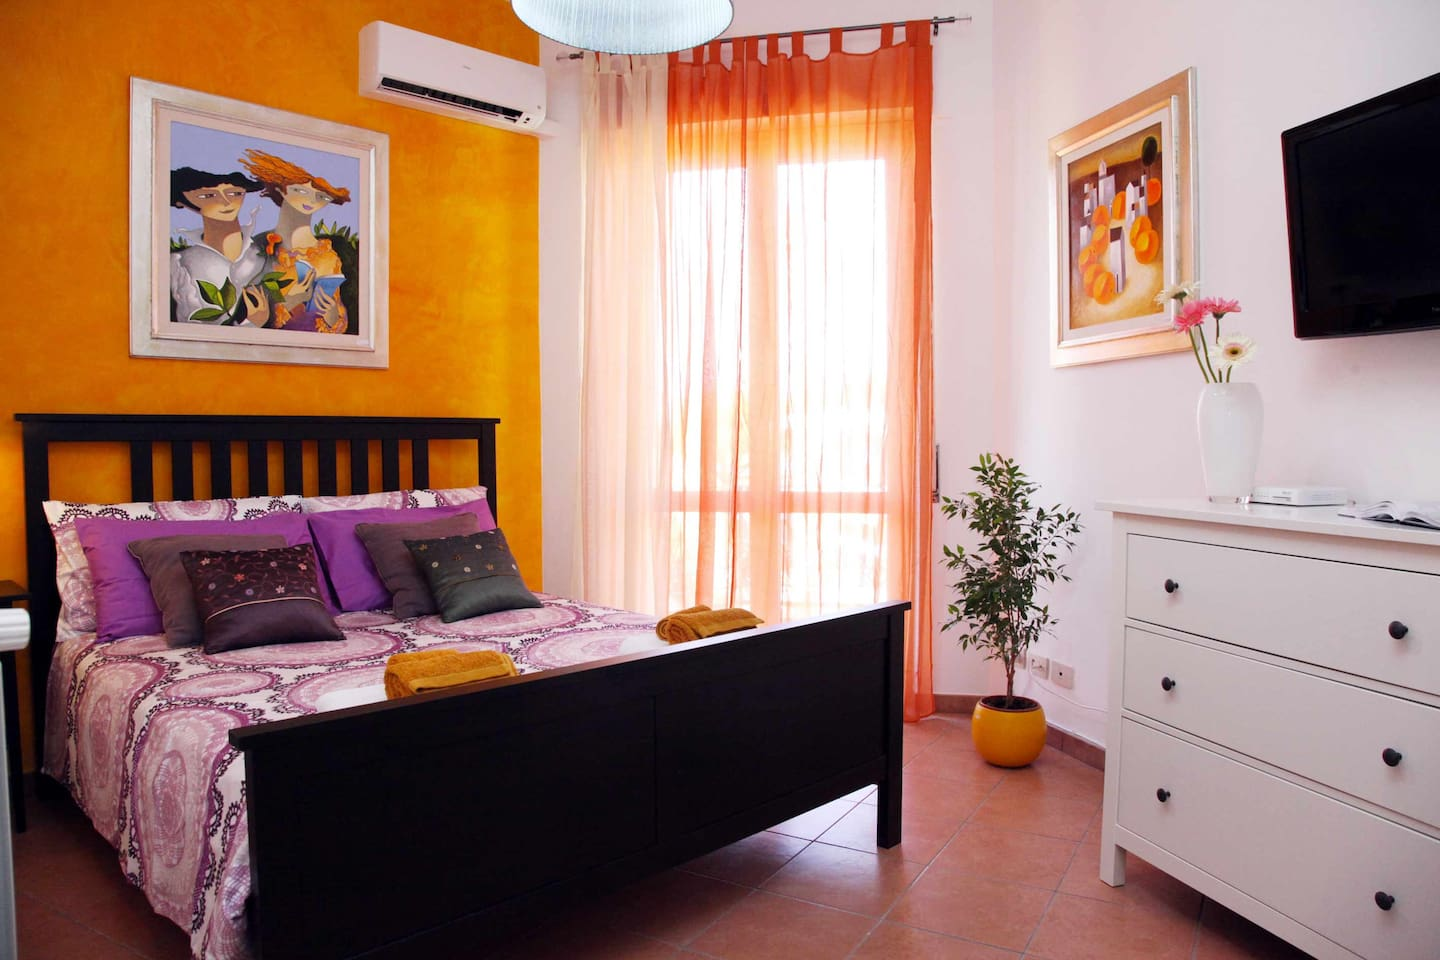 B&B LA DUCHESSA A ROMA -Double Room